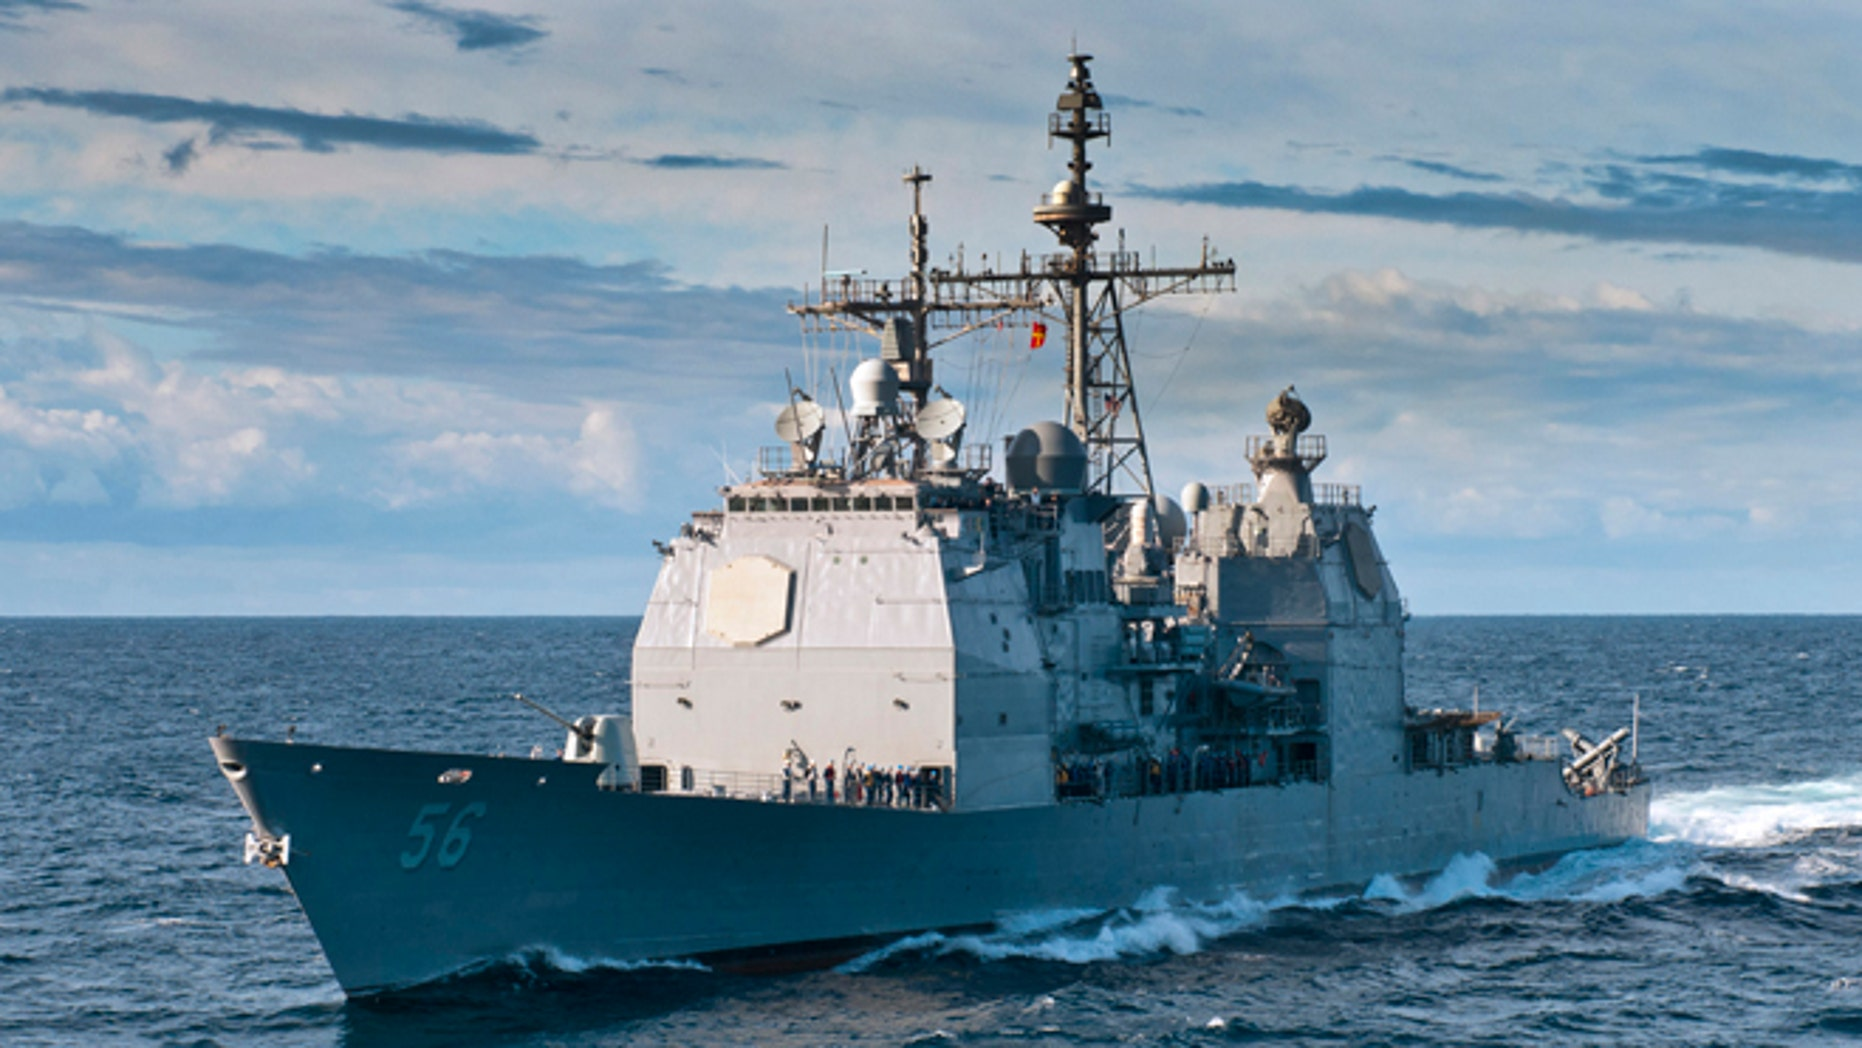 In this image provided by the U.S. Navy shows the guided-missile cruiser USS San Jacinto approaches at sea in the Atlantic Ocean June 6, 2012.